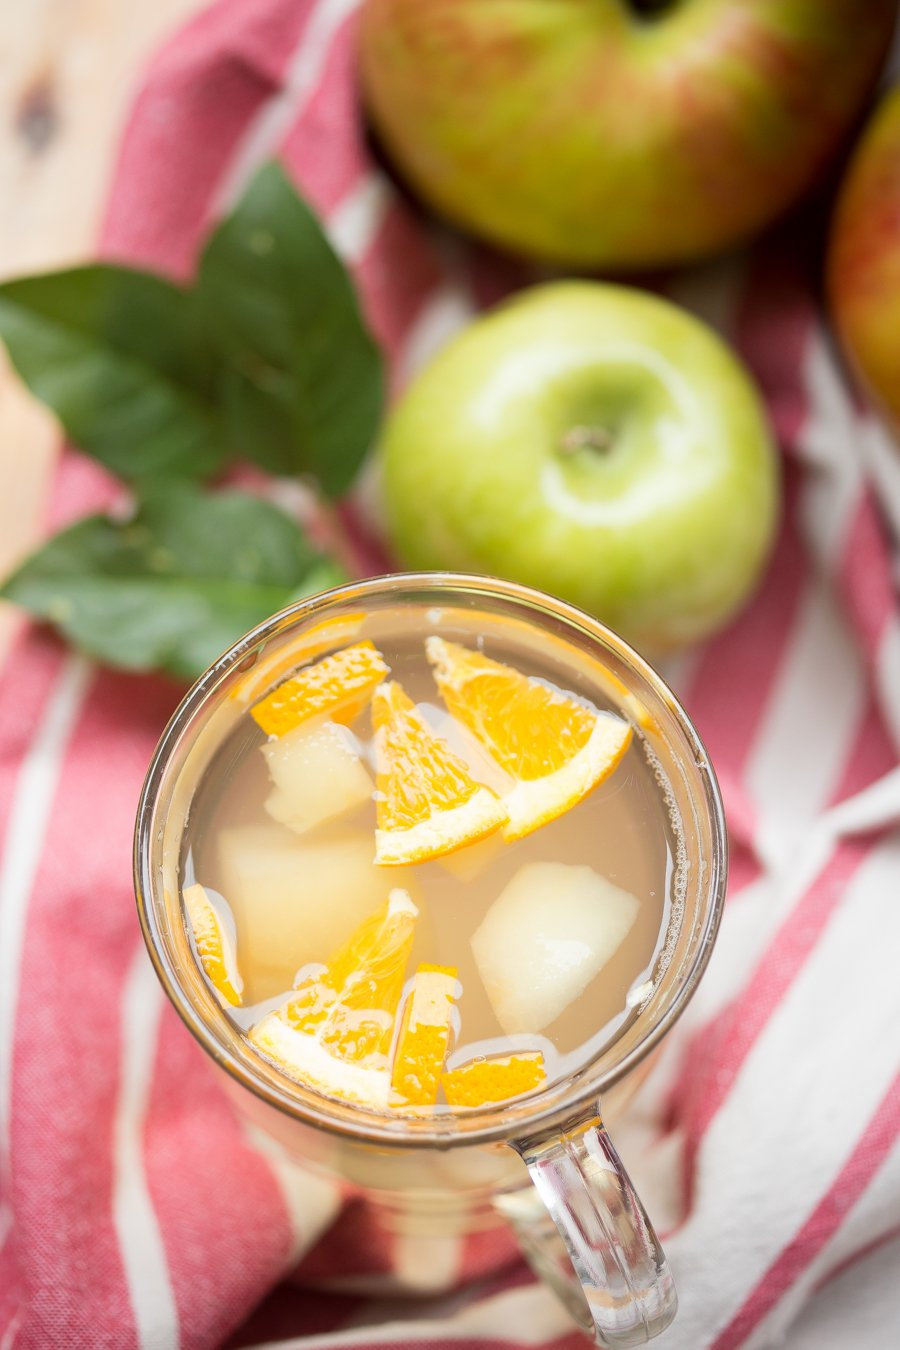 Fall Apple Drink or Apple Compote is a simple, yet satisfying way to enjoy apples! Made with just apples, lemon and sweetener this was our favorite drink growing up.